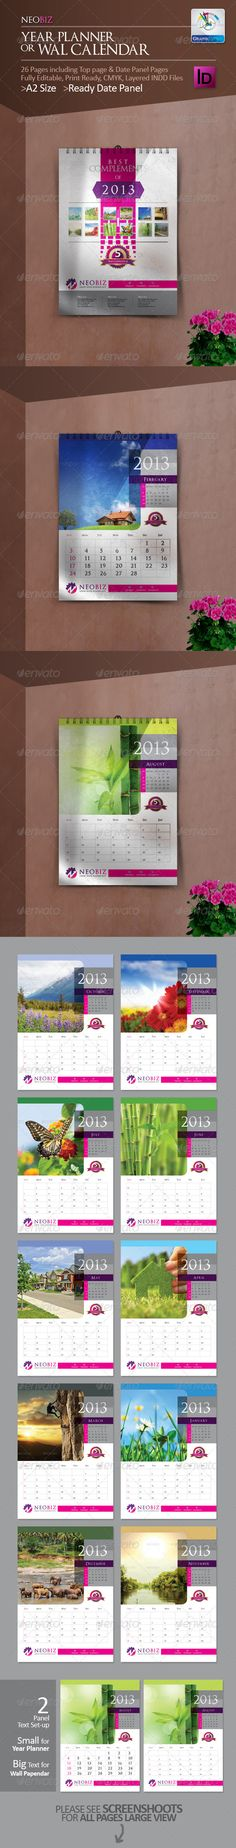 Wall Calendar   Calendar  Fonts And Calendar Design